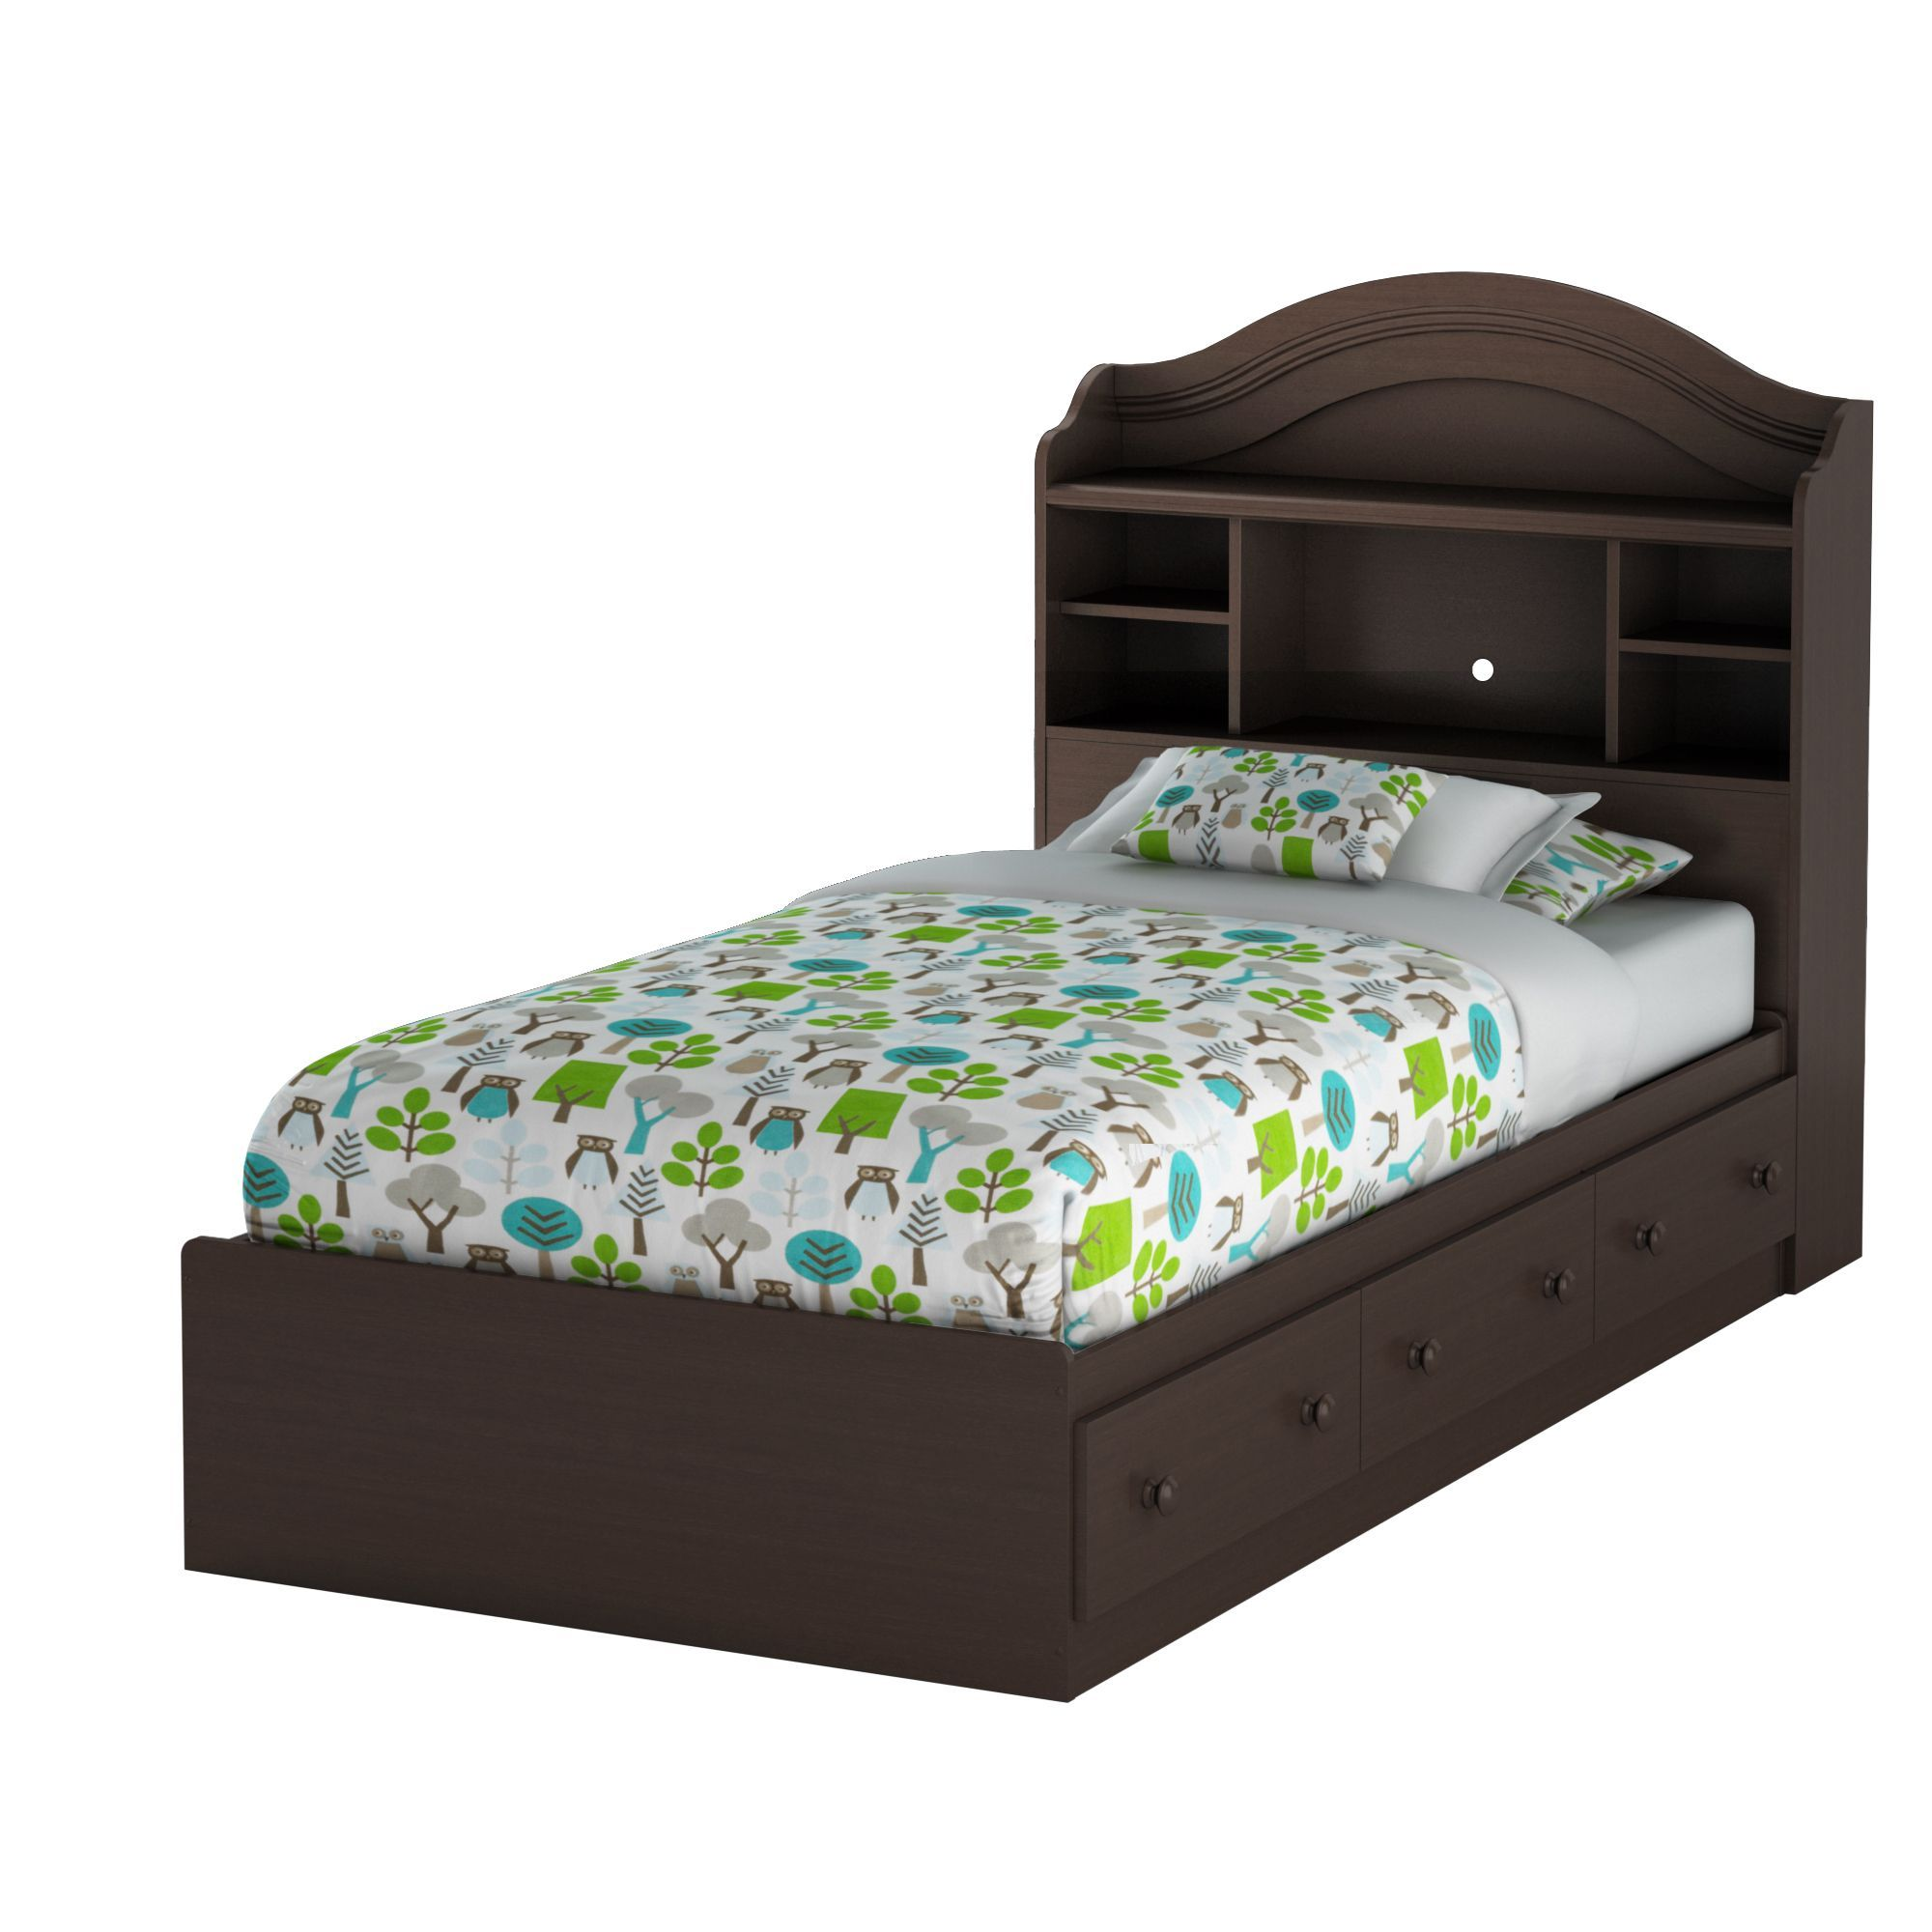 South Shore Summer Breeze Twin Mates Bed with Drawers and